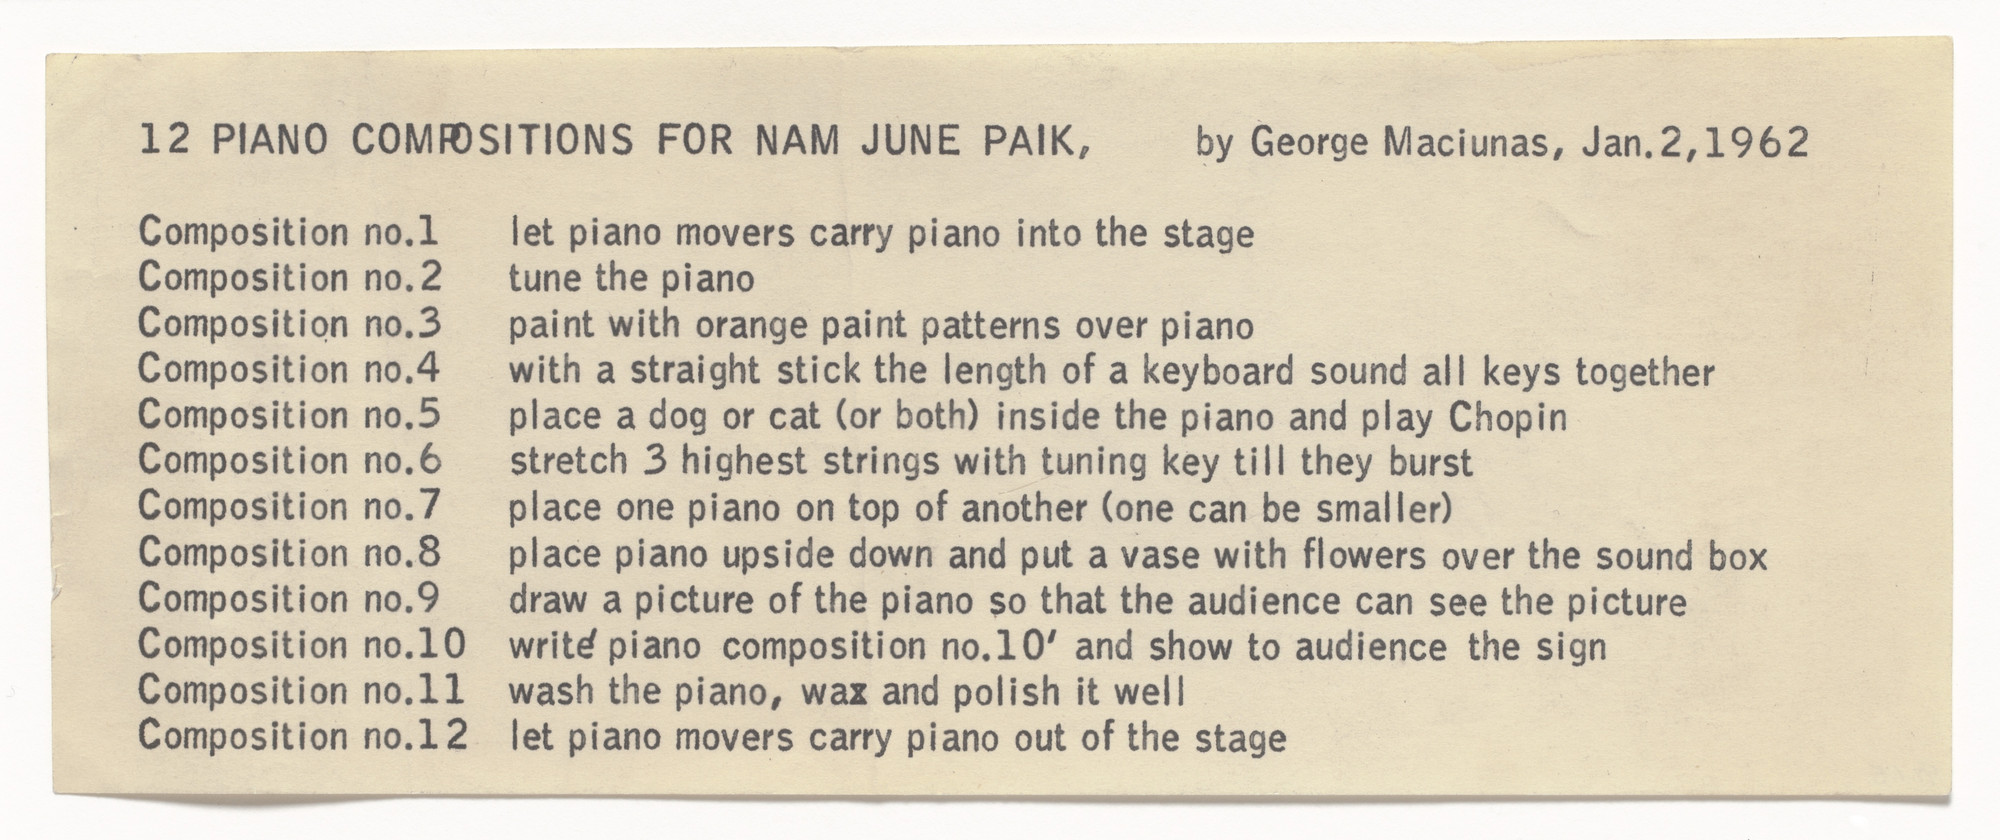 George Maciunas. 12 Piano Compositions for Nam June Paik. 1962